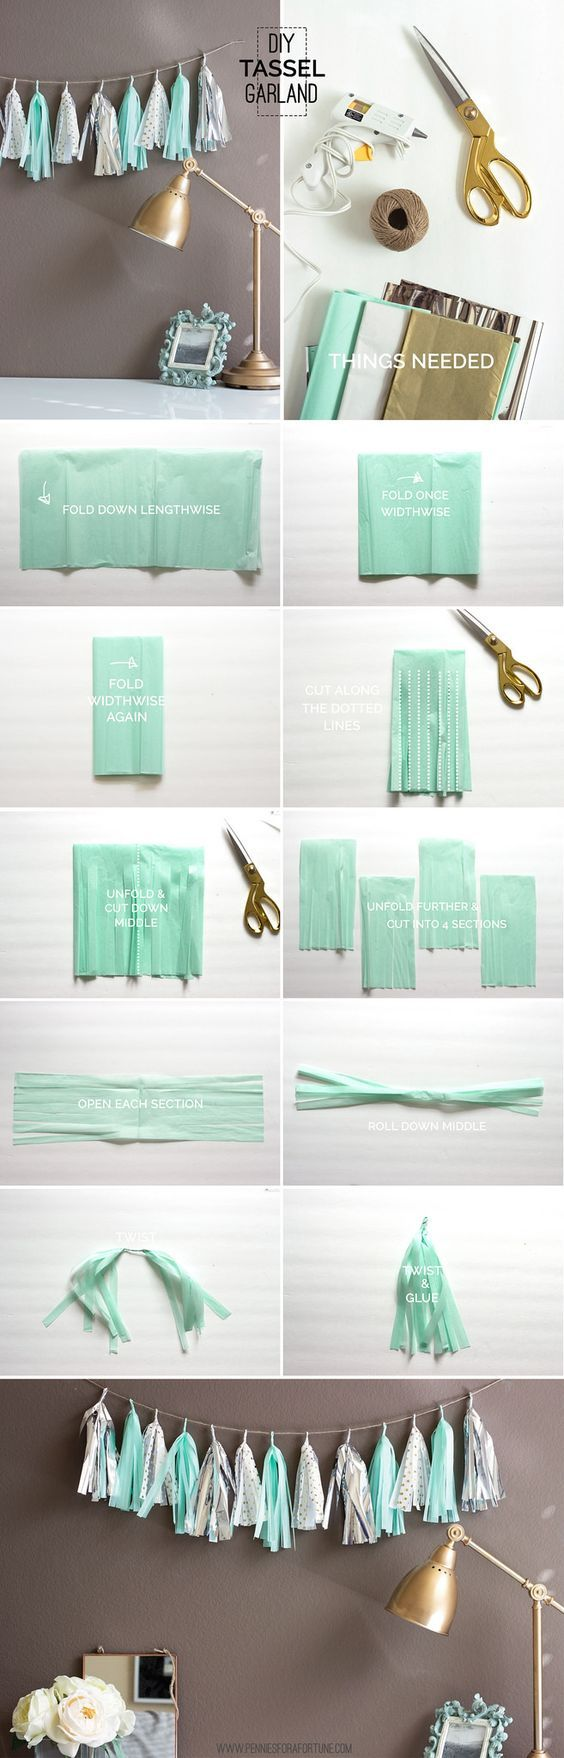 25 Best Office Images By Helen Selley On Pinterest Bedrooms Home Pen Paper Snowman Paint Marker Cp 12 Green 1 Pc 31 Super Useful Diy Desk Decor Ideas To Follow